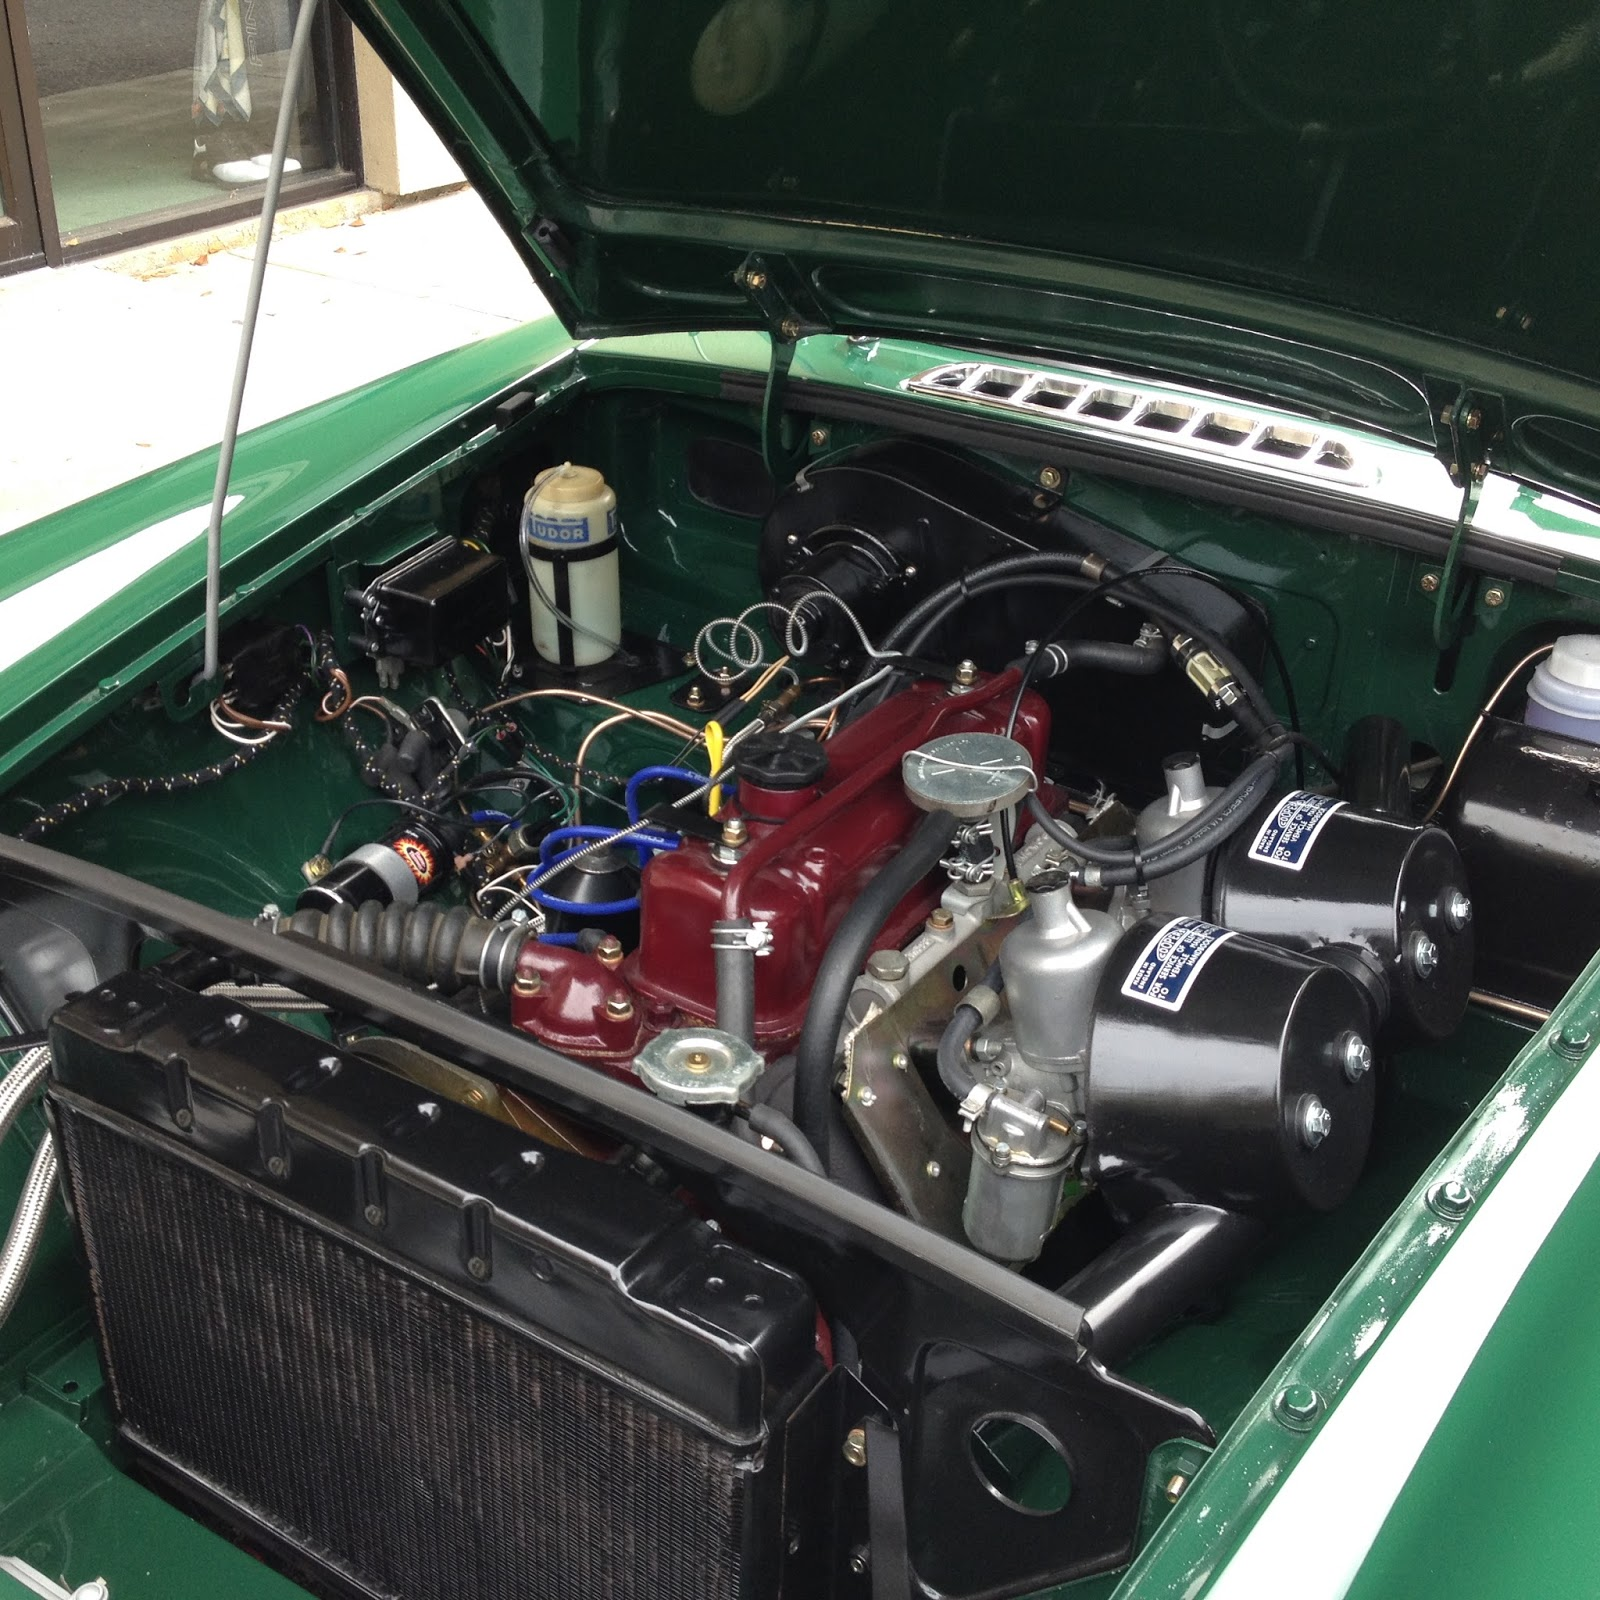 medium resolution of newly rebuilt engine transmission and differential no rust lots of photos of each phase of the restoration this is basically a brand new car